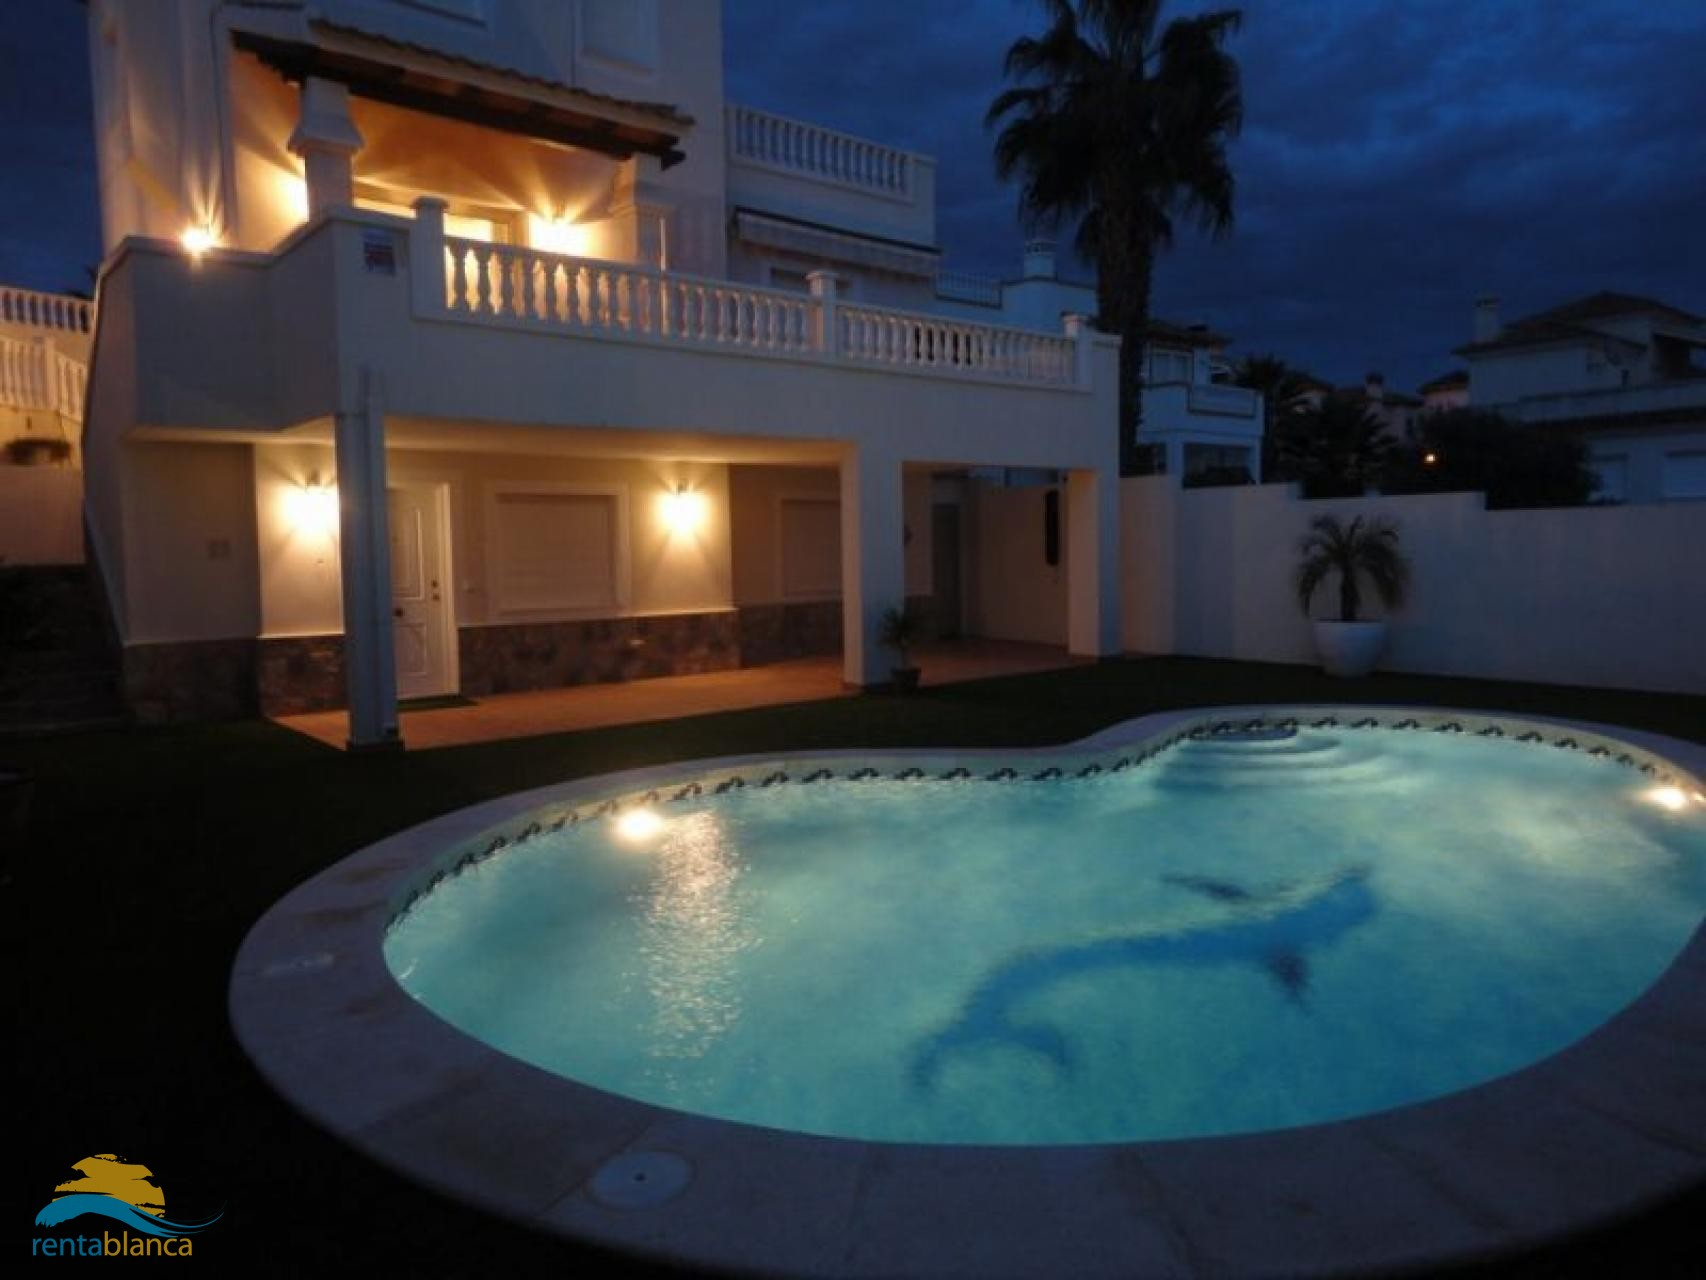 Luxurious and spacious villa - Blue Hill - Rentablanca